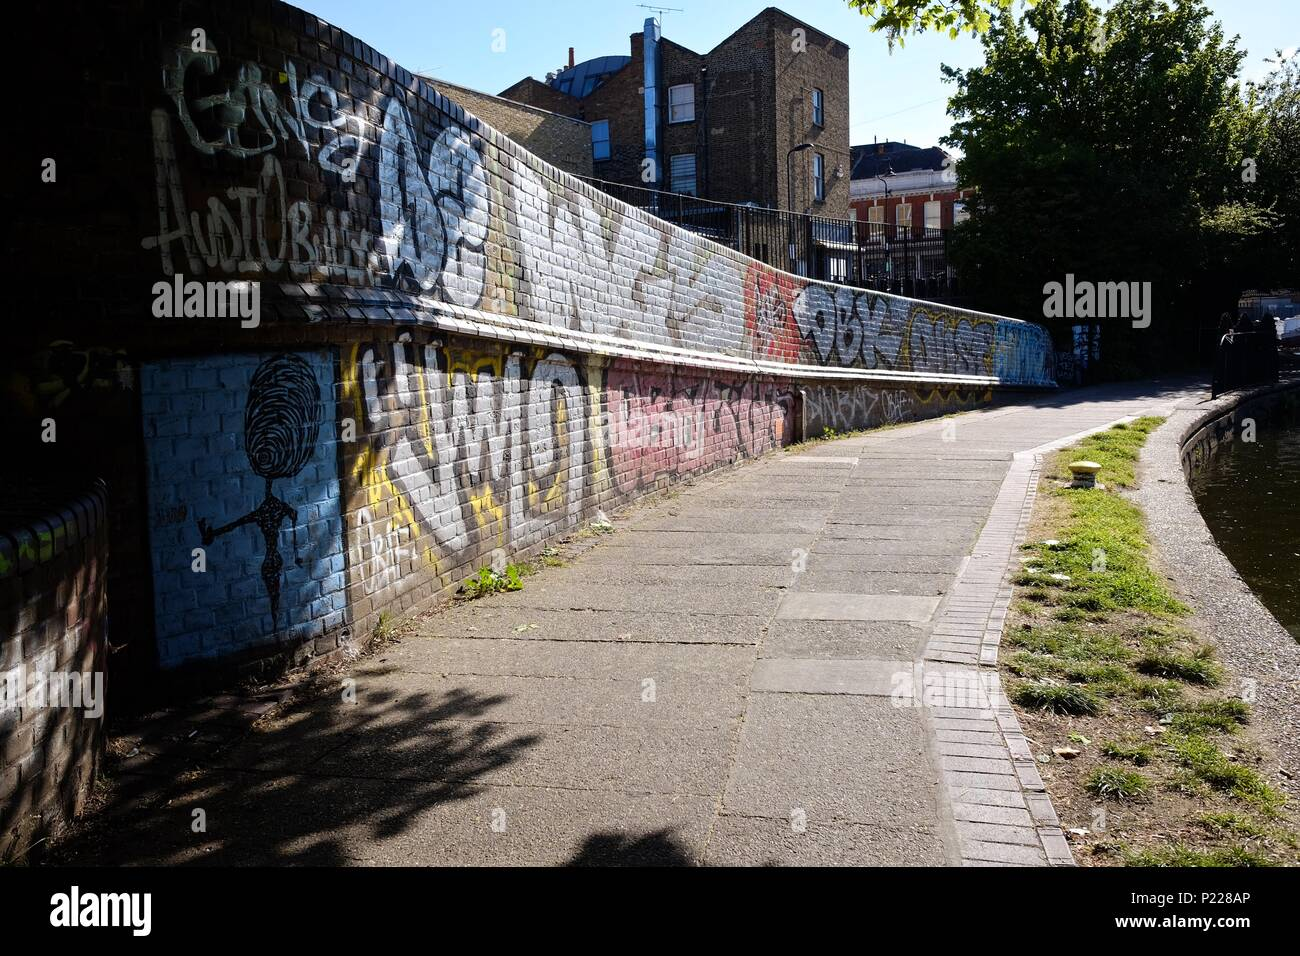 Graffiti alongside towpath to a canal in London - Stock Image